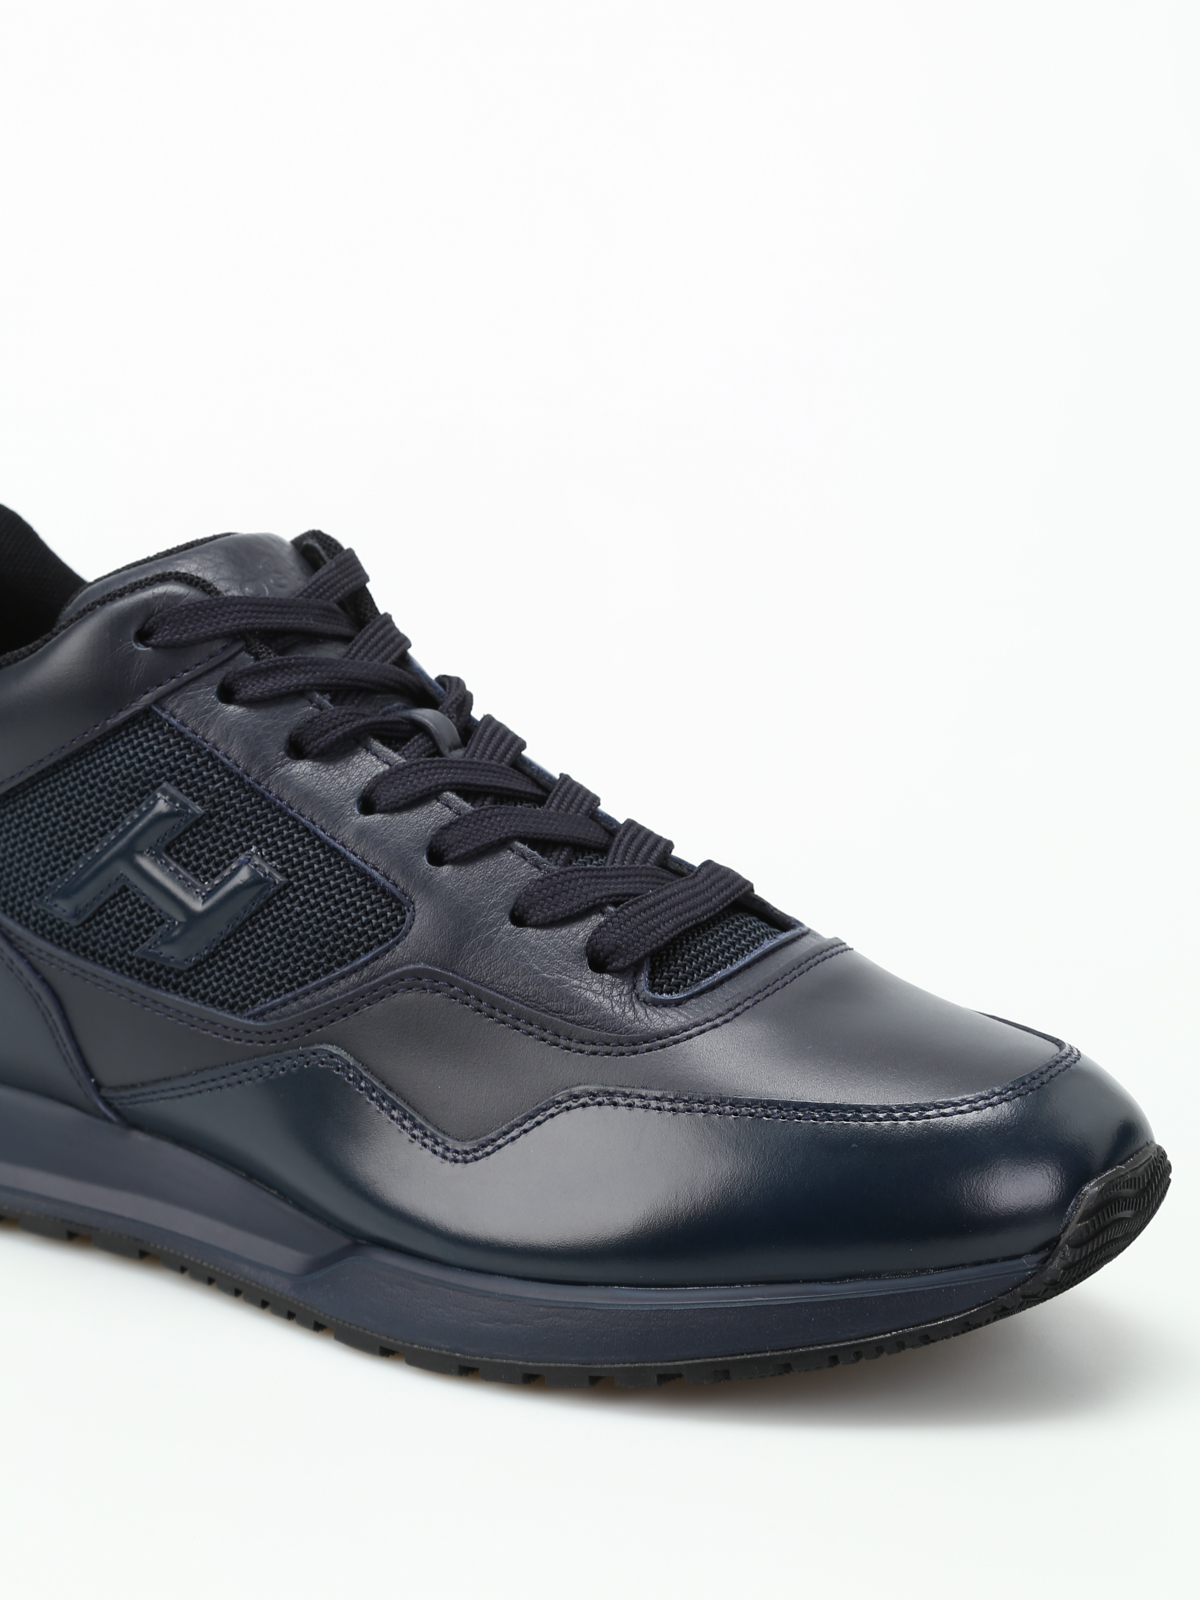 Trainers Hogan - H321 two-tone leather mid top shoes ...